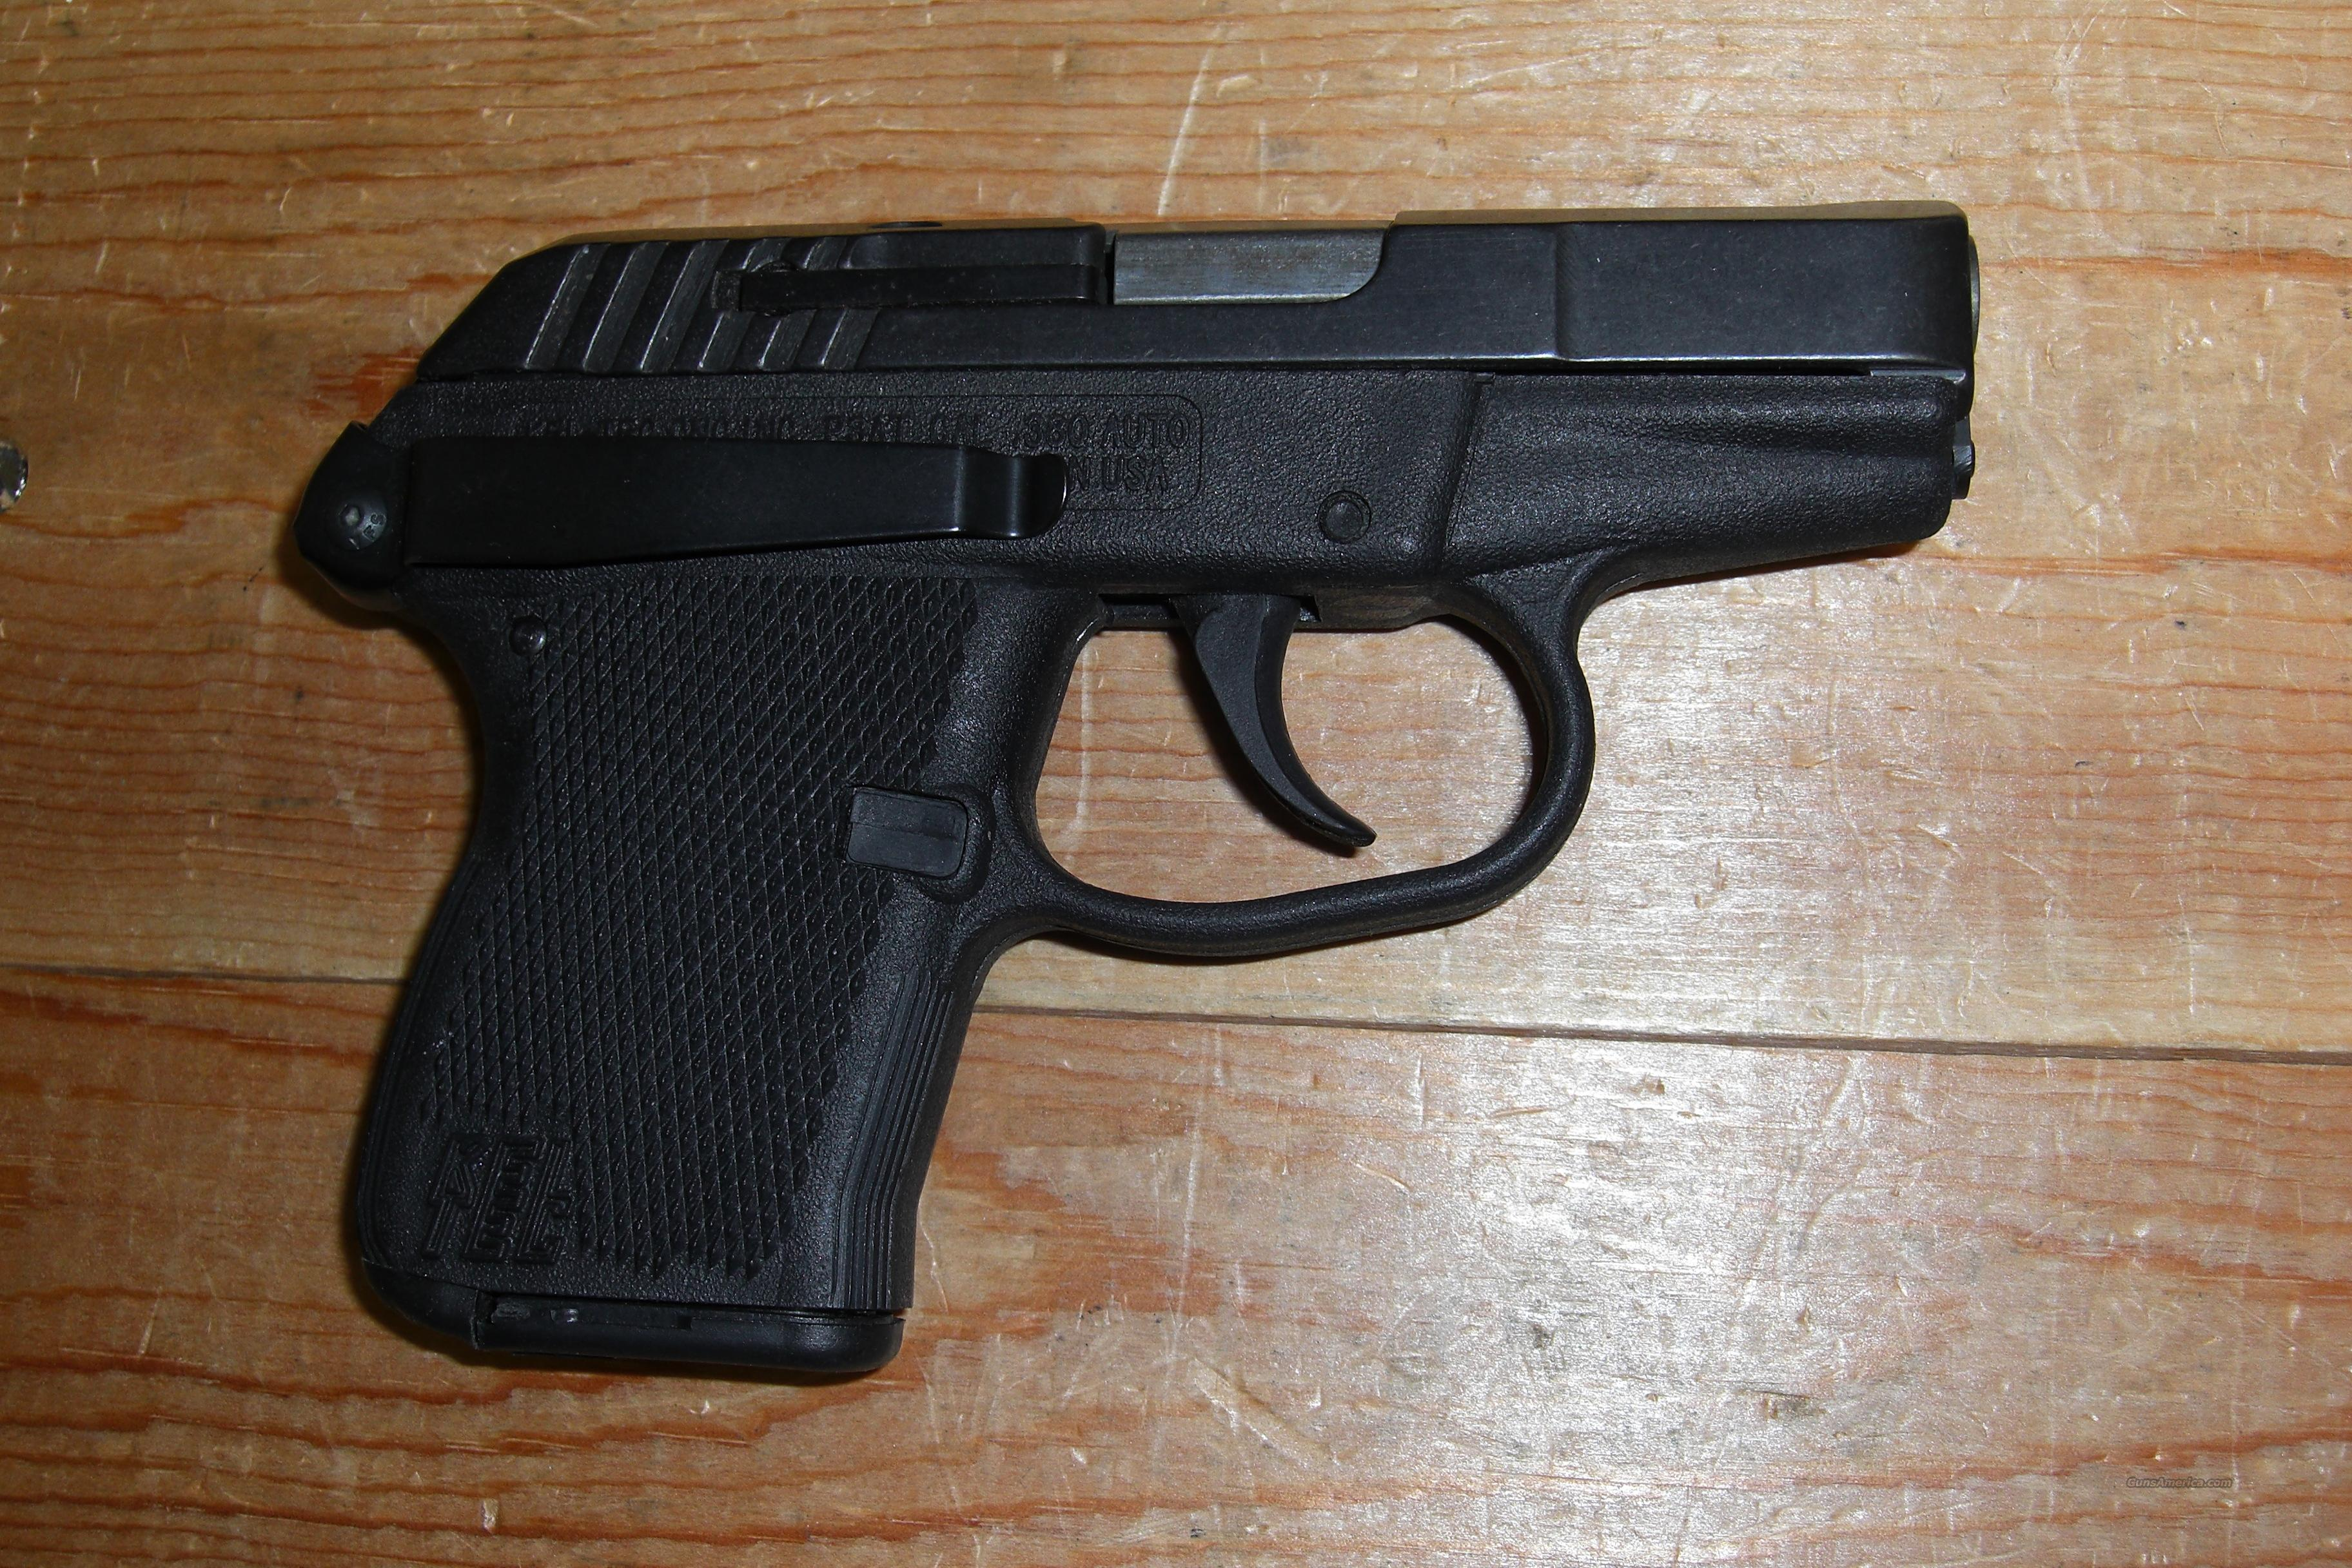 P3AT w/attached belt clip  Guns > Pistols > Kel-Tec Pistols > Pocket Pistol Type